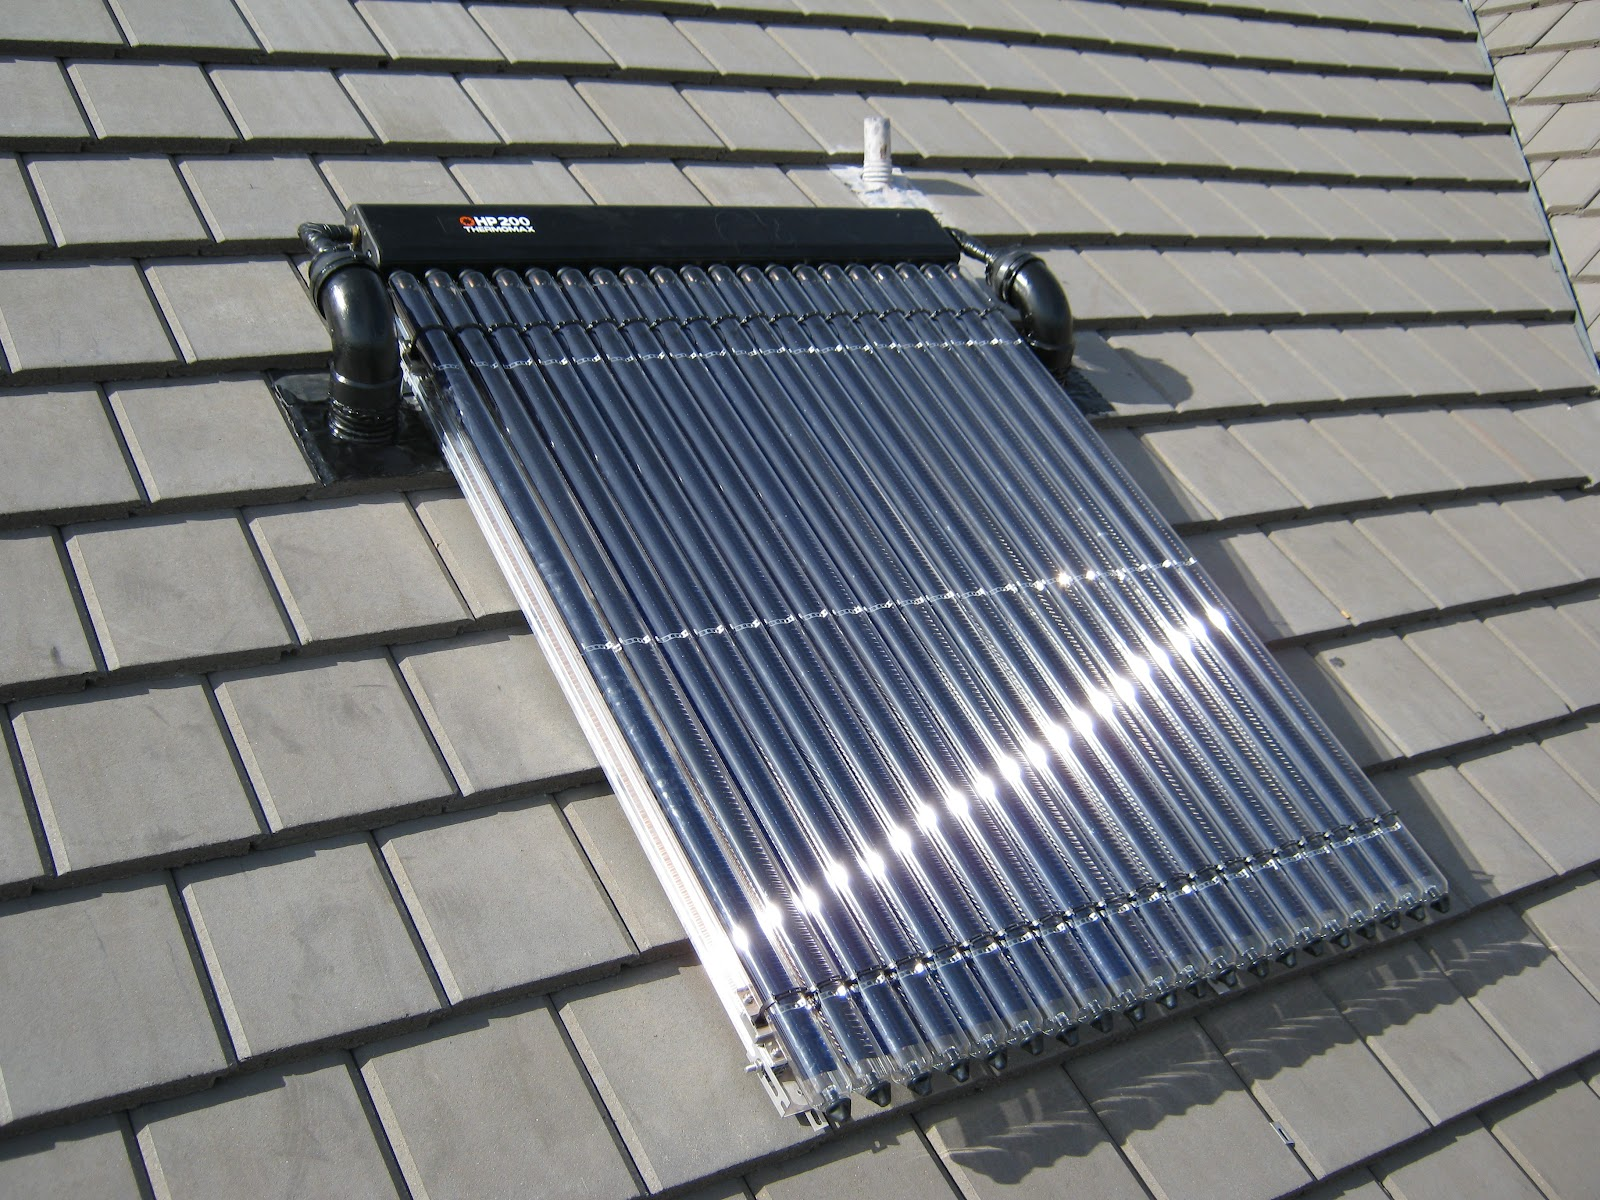 Heatseeker Reviews: Solar panels - why not get together on them?